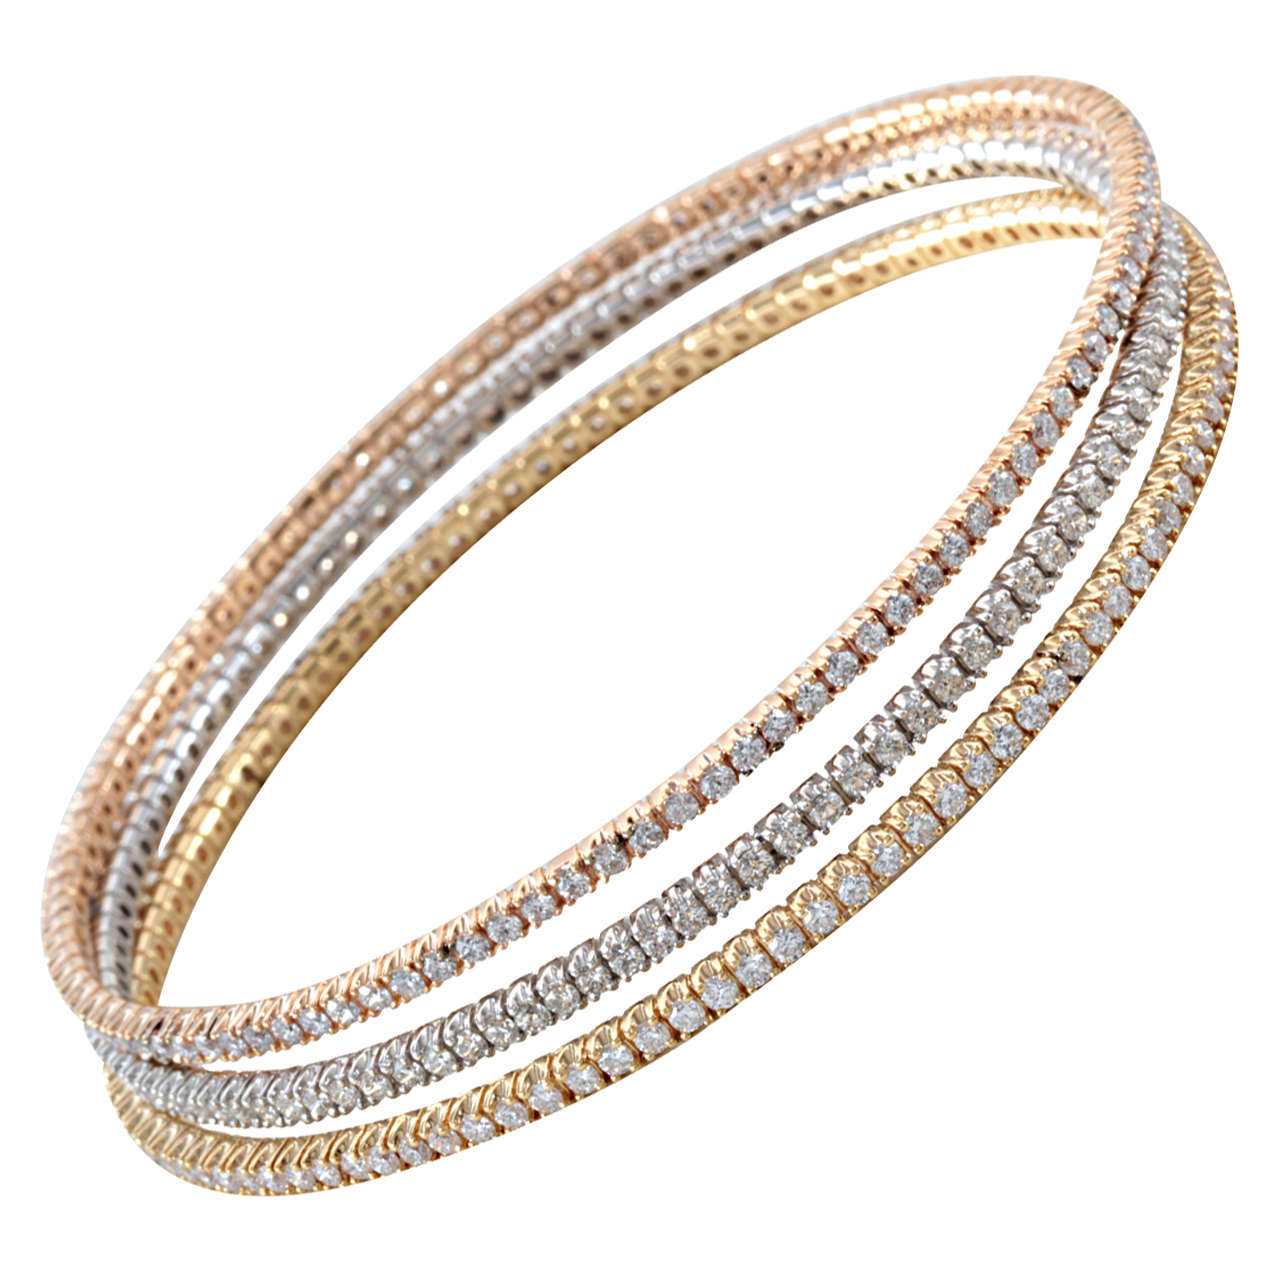 pave cuff bangles diamond d rose bracelets in g certified bracelet bangle twt set gold h ct